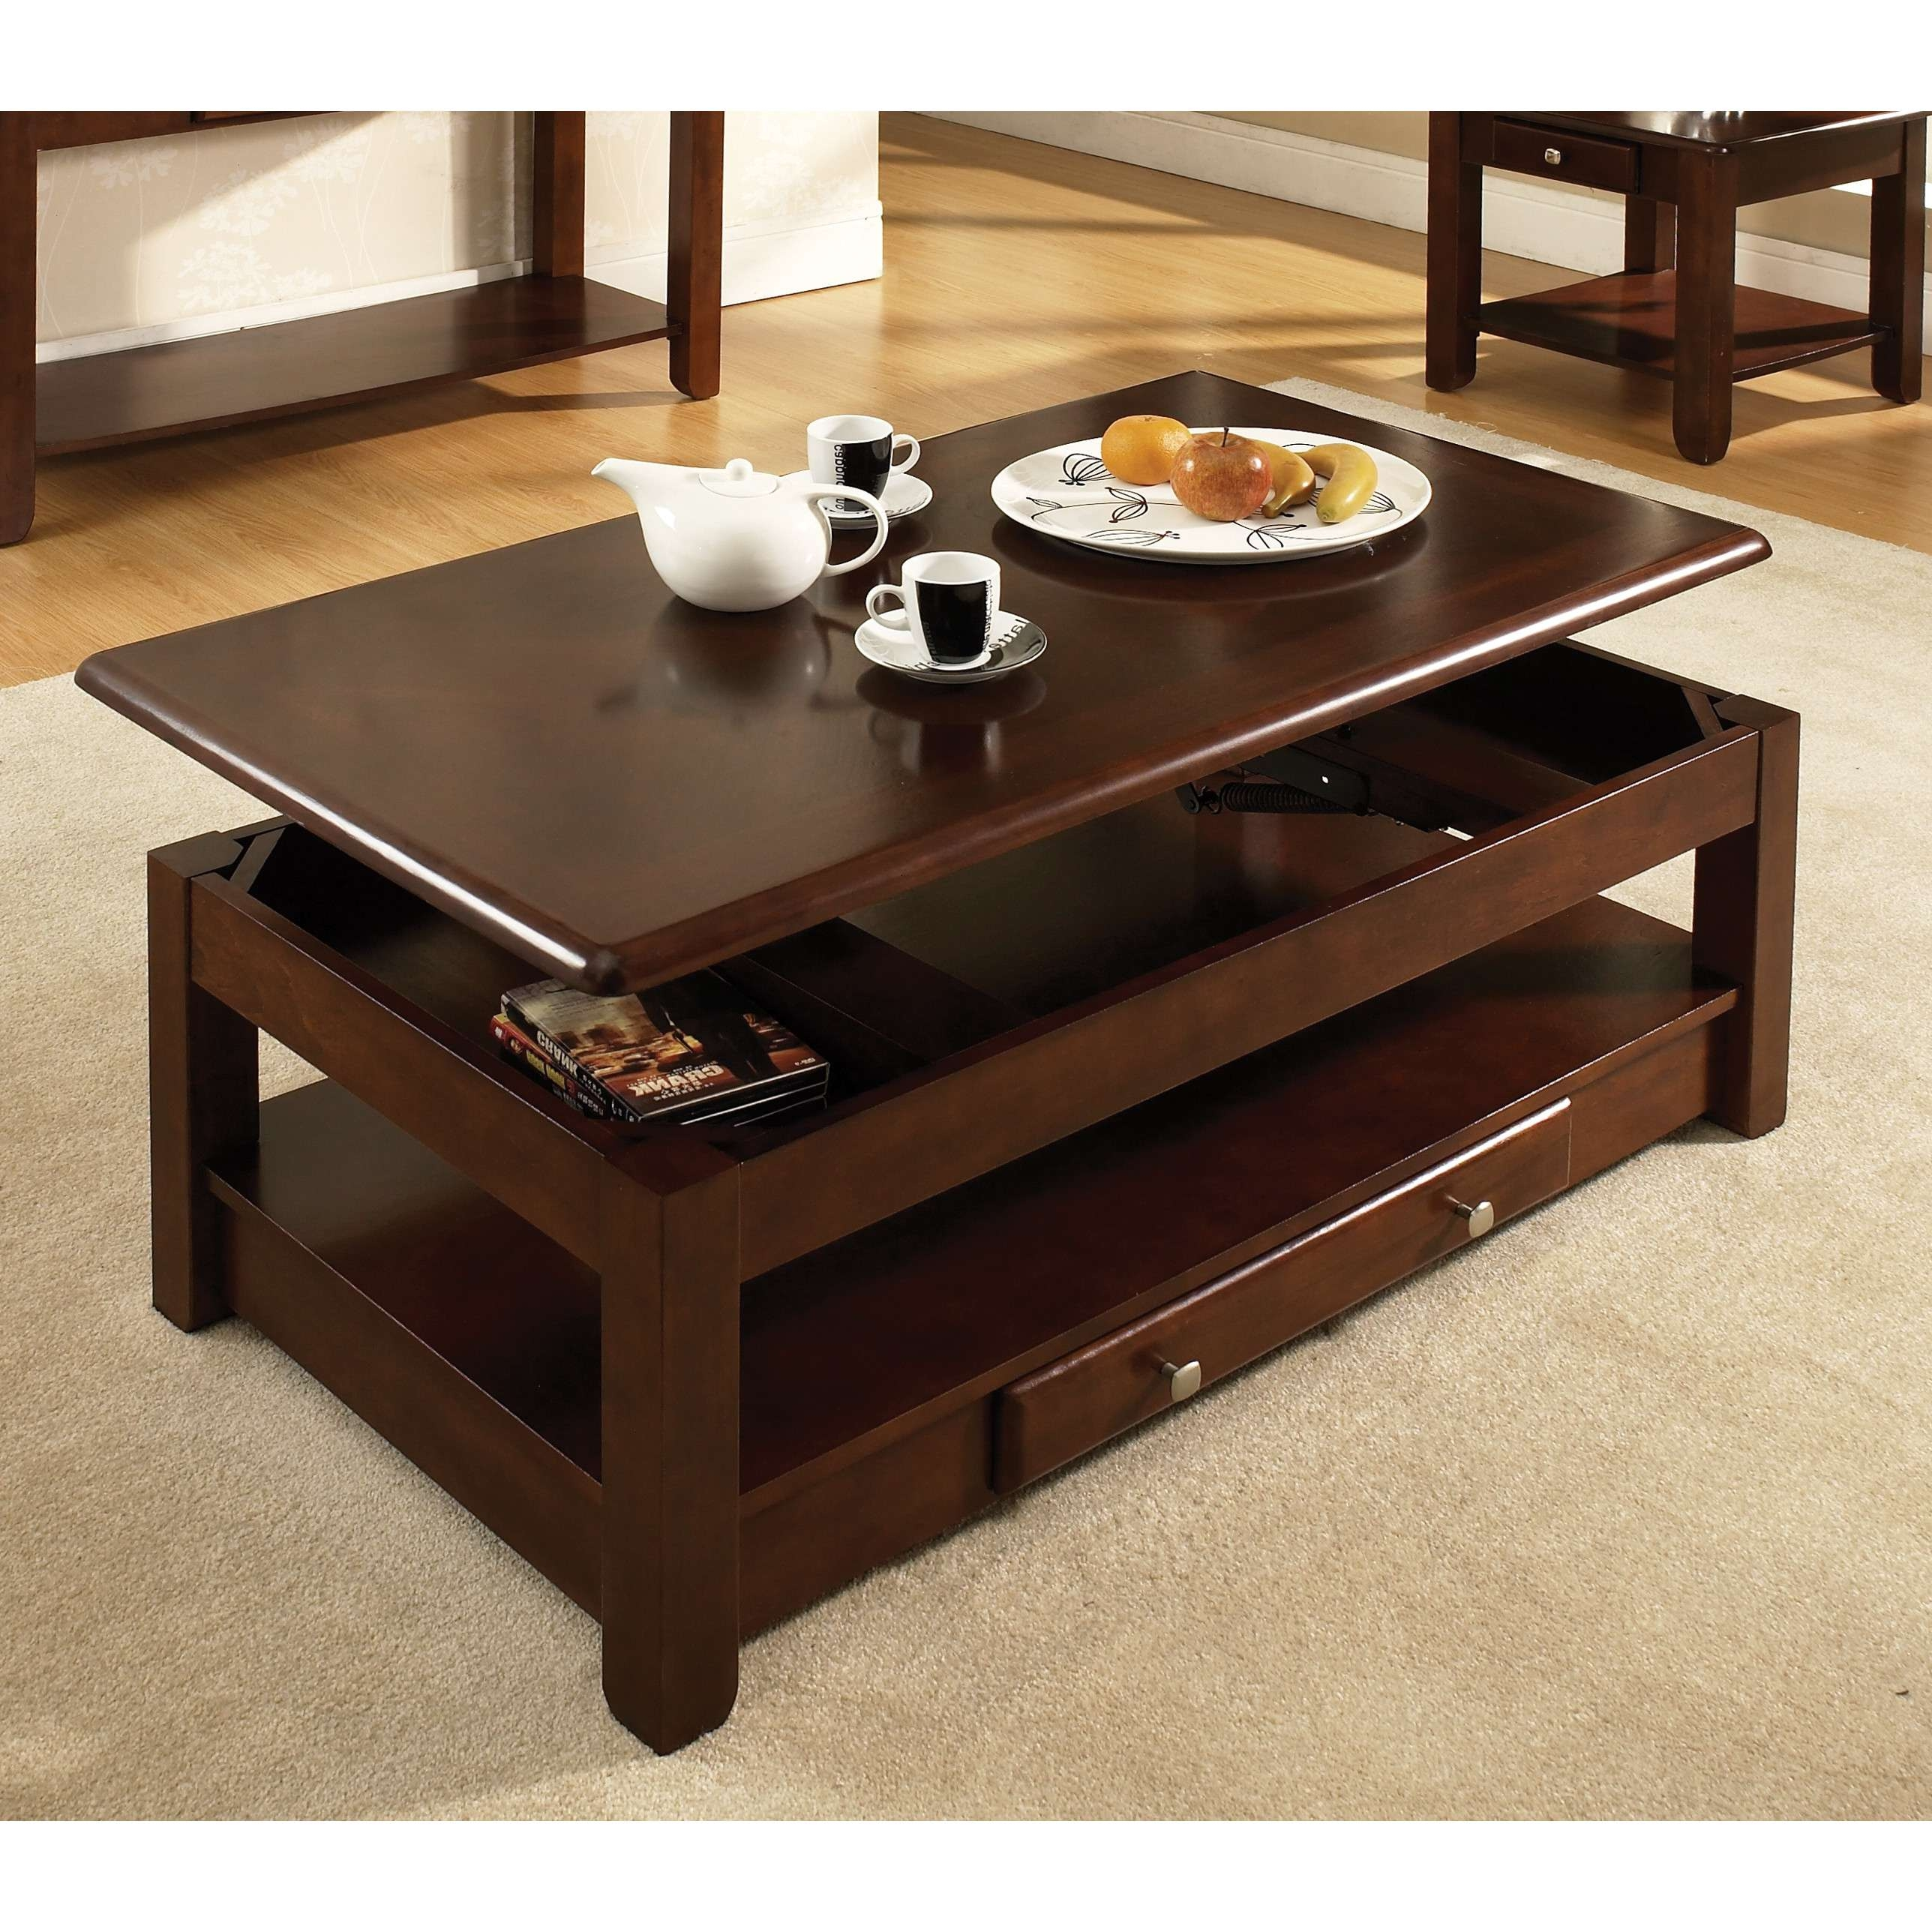 Coffee Tables : Extraordinary Dark Brown Modern Wood Lift Top Throughout Most Up To Date Coffee Tables With Raisable Top (View 10 of 20)